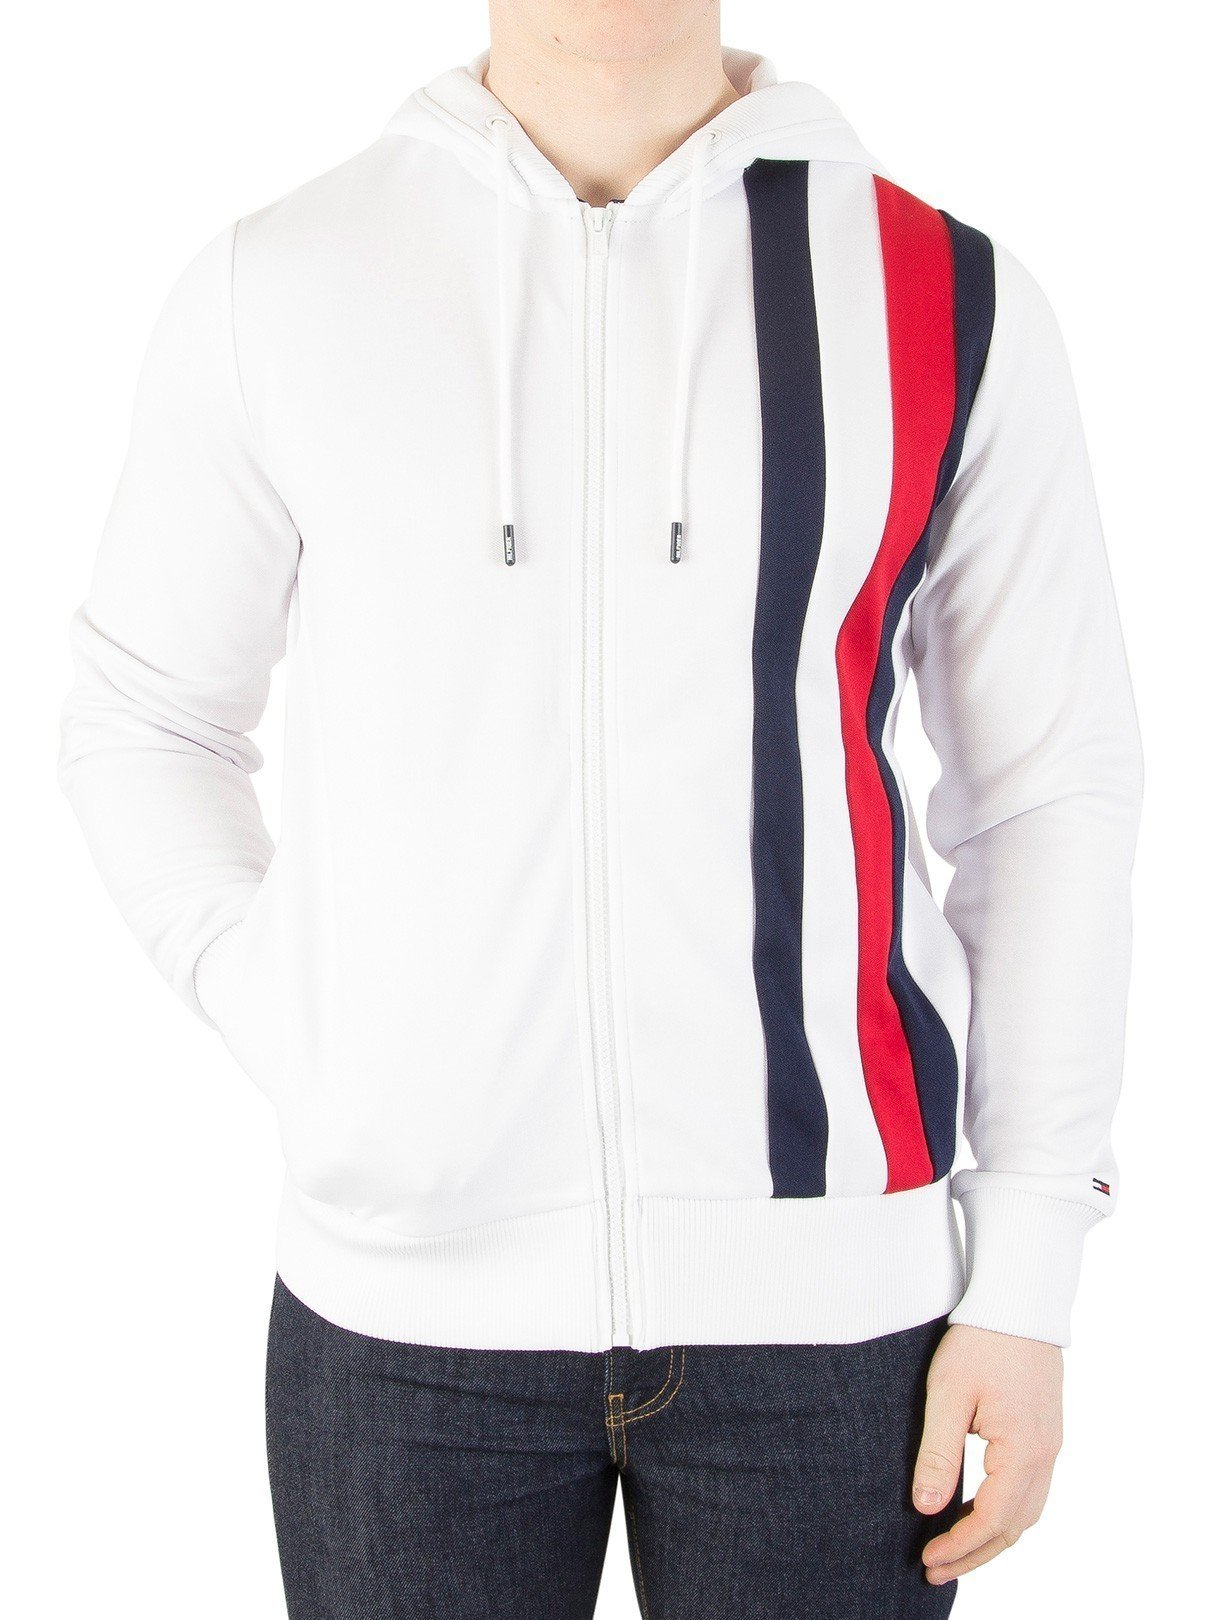 Tommy Hilfiger Men's Sporty Tech Zip Jacket, White, Small